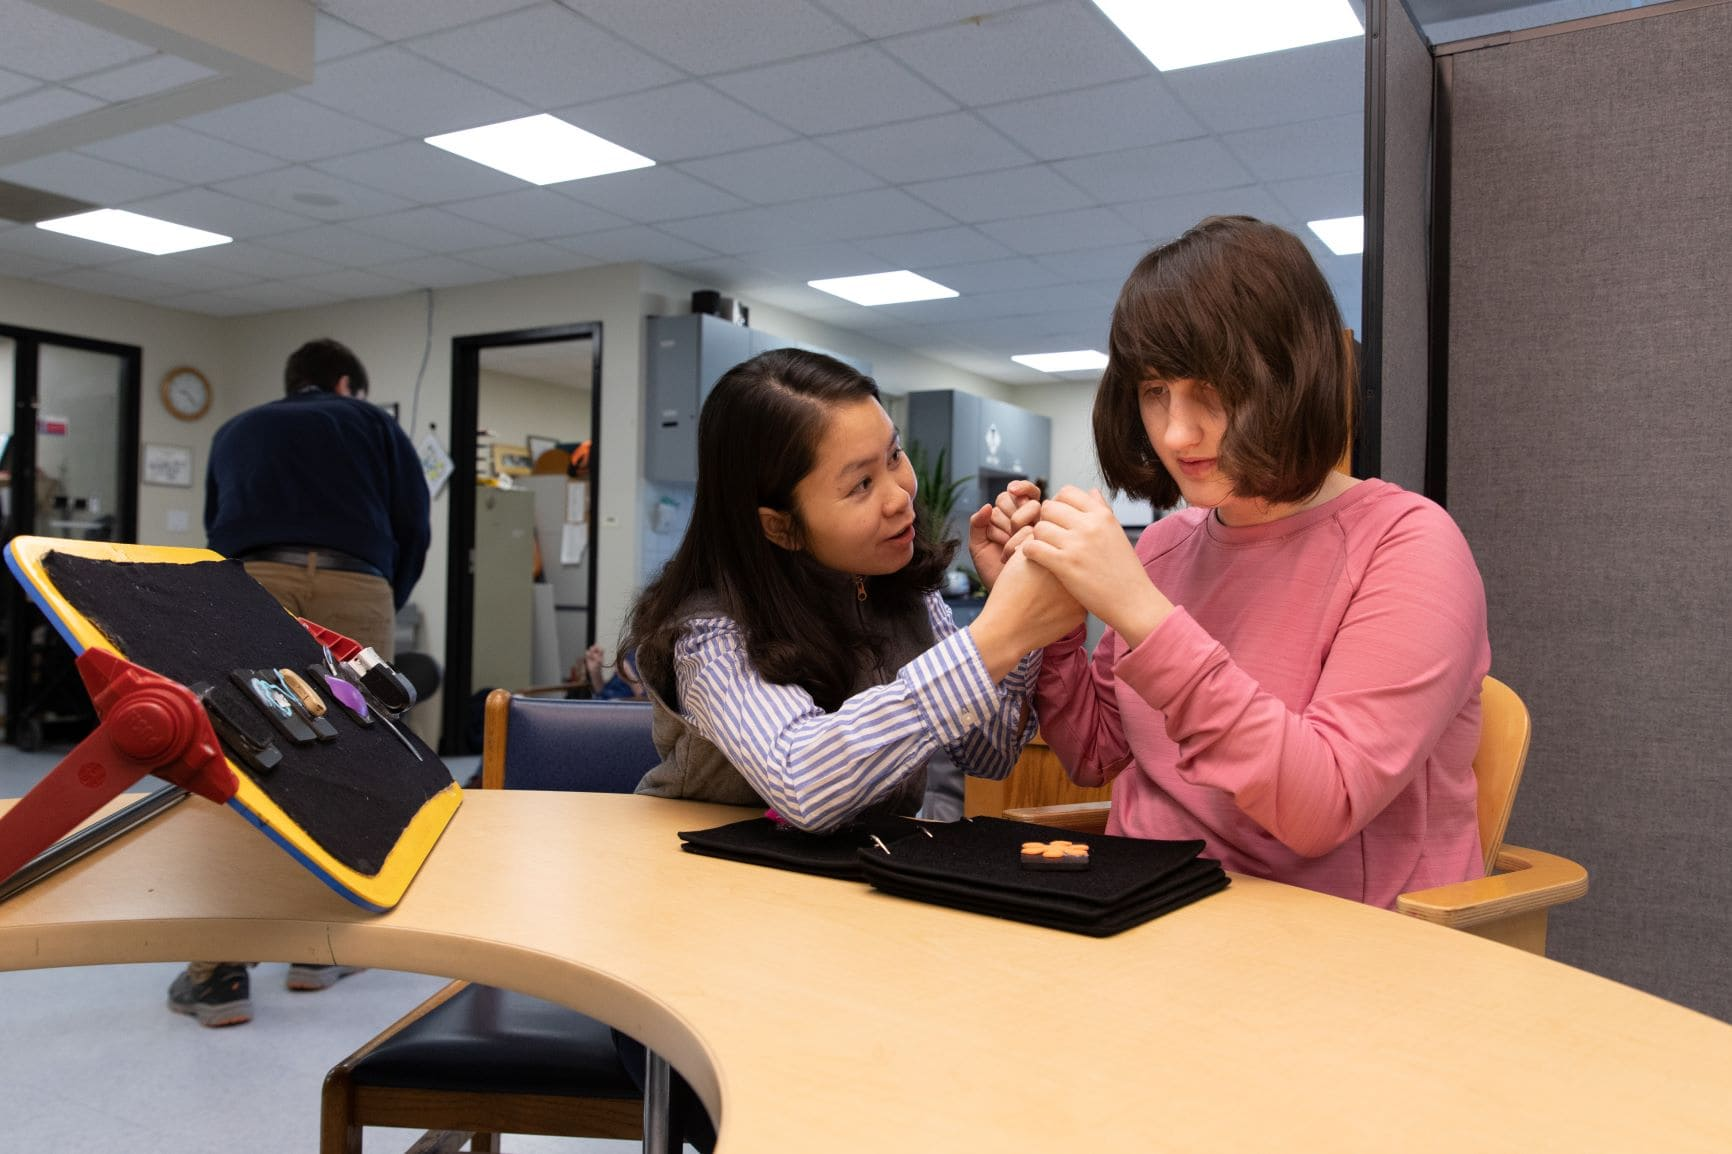 Thanh and Genna work with a tactile book, communicating with tactile sign language.